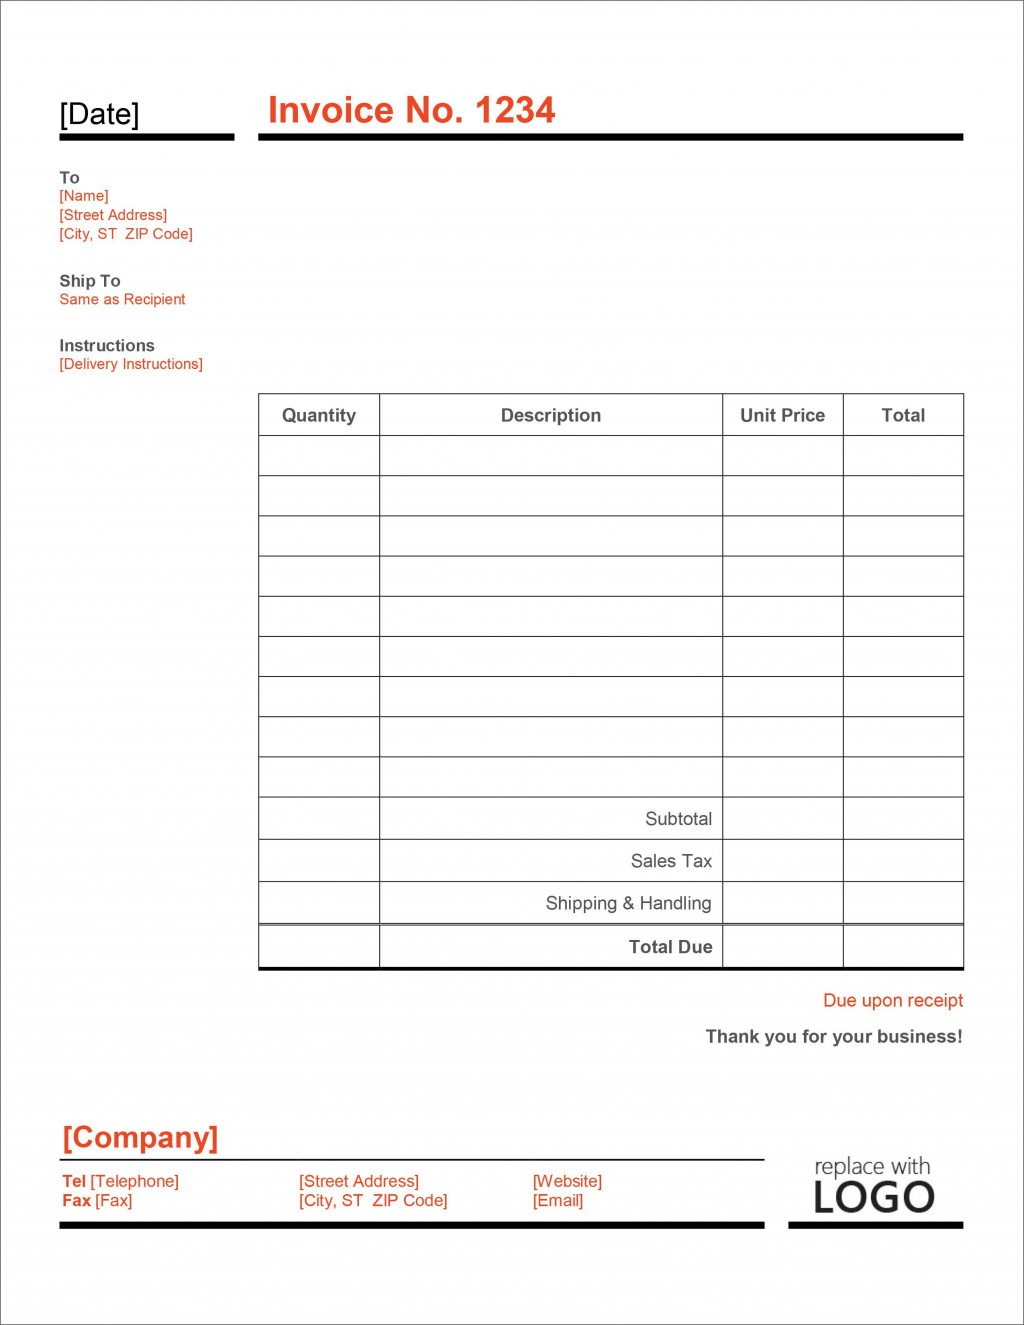 007 Top Microsoft Excel Invoice Template Example  Gst Uk ProformaLarge